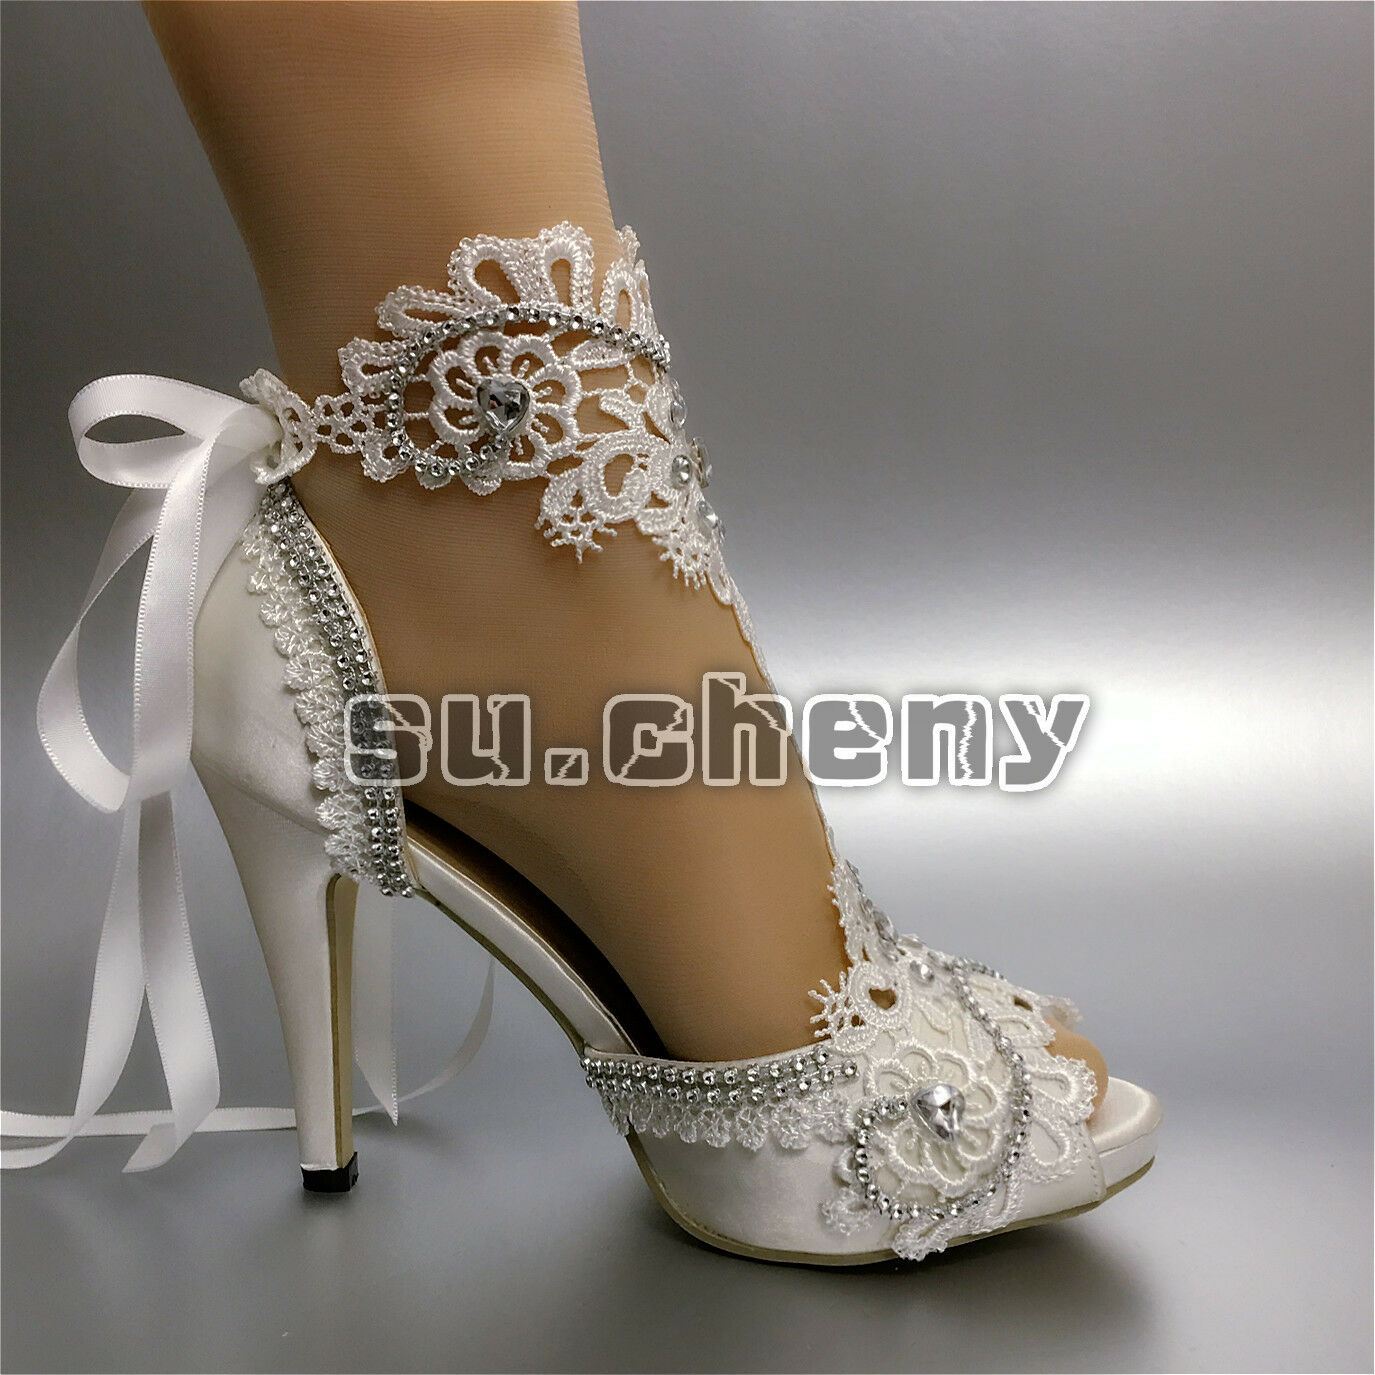 Su.cheny Rhinestone satin peep toe ribbon ankle white white white ivory Wedding Bridal shoes fcf53b